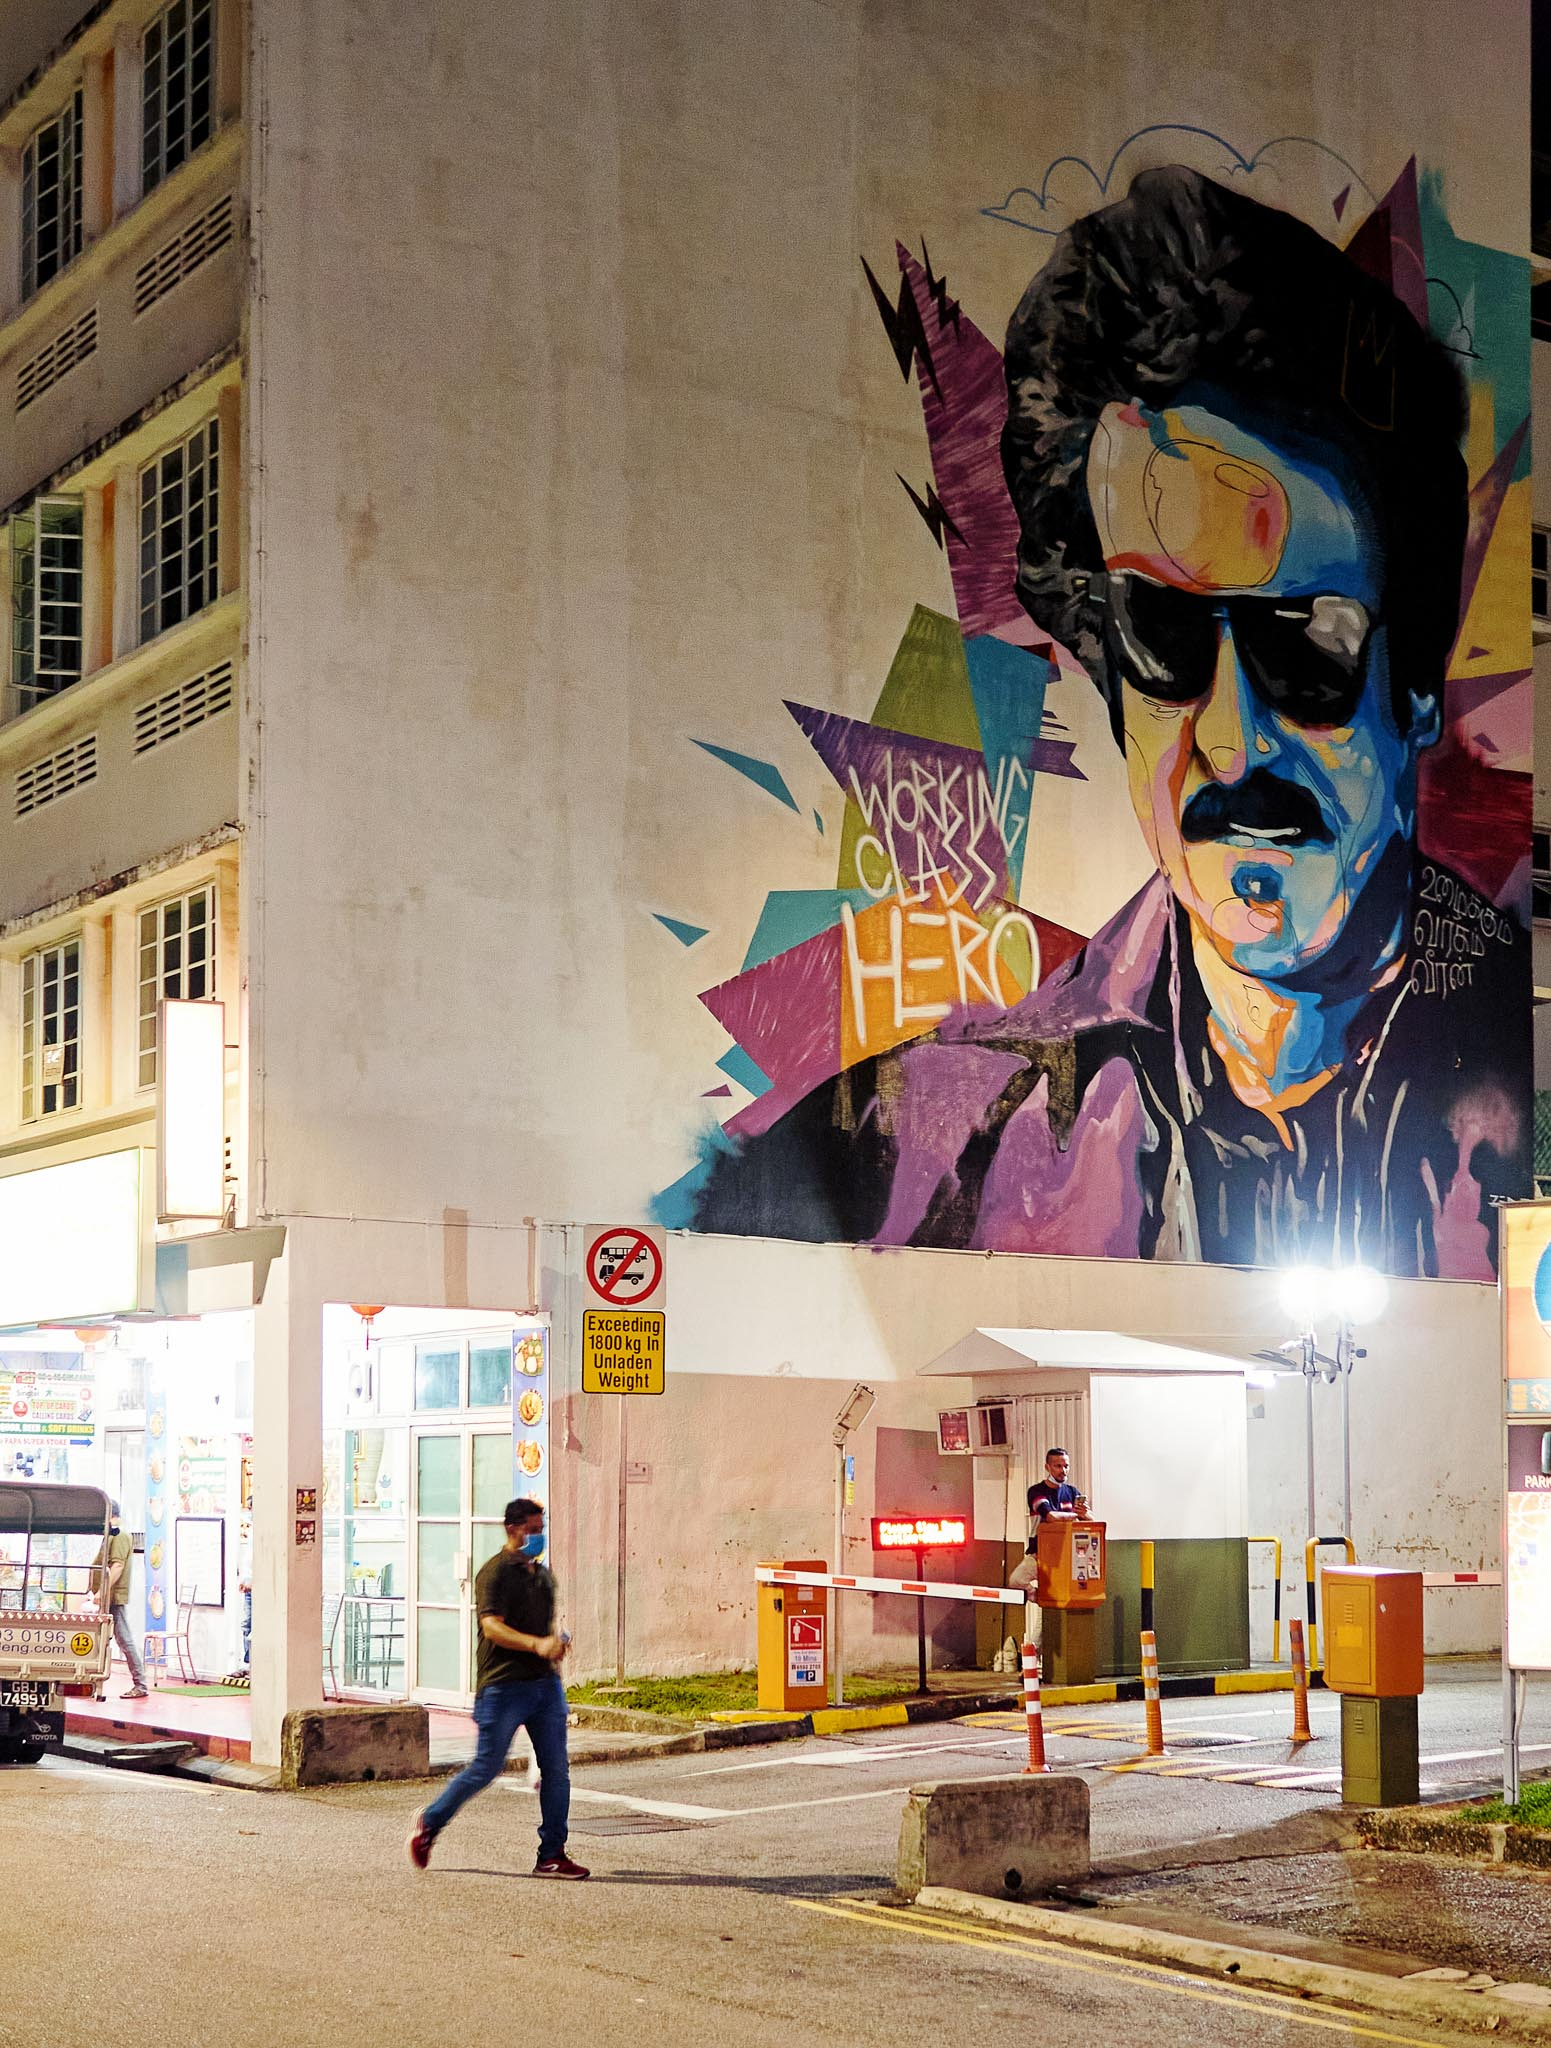 Mural of an India Actor, Rajinikanth in a wall, Hindoo Road, Little India, Singapore